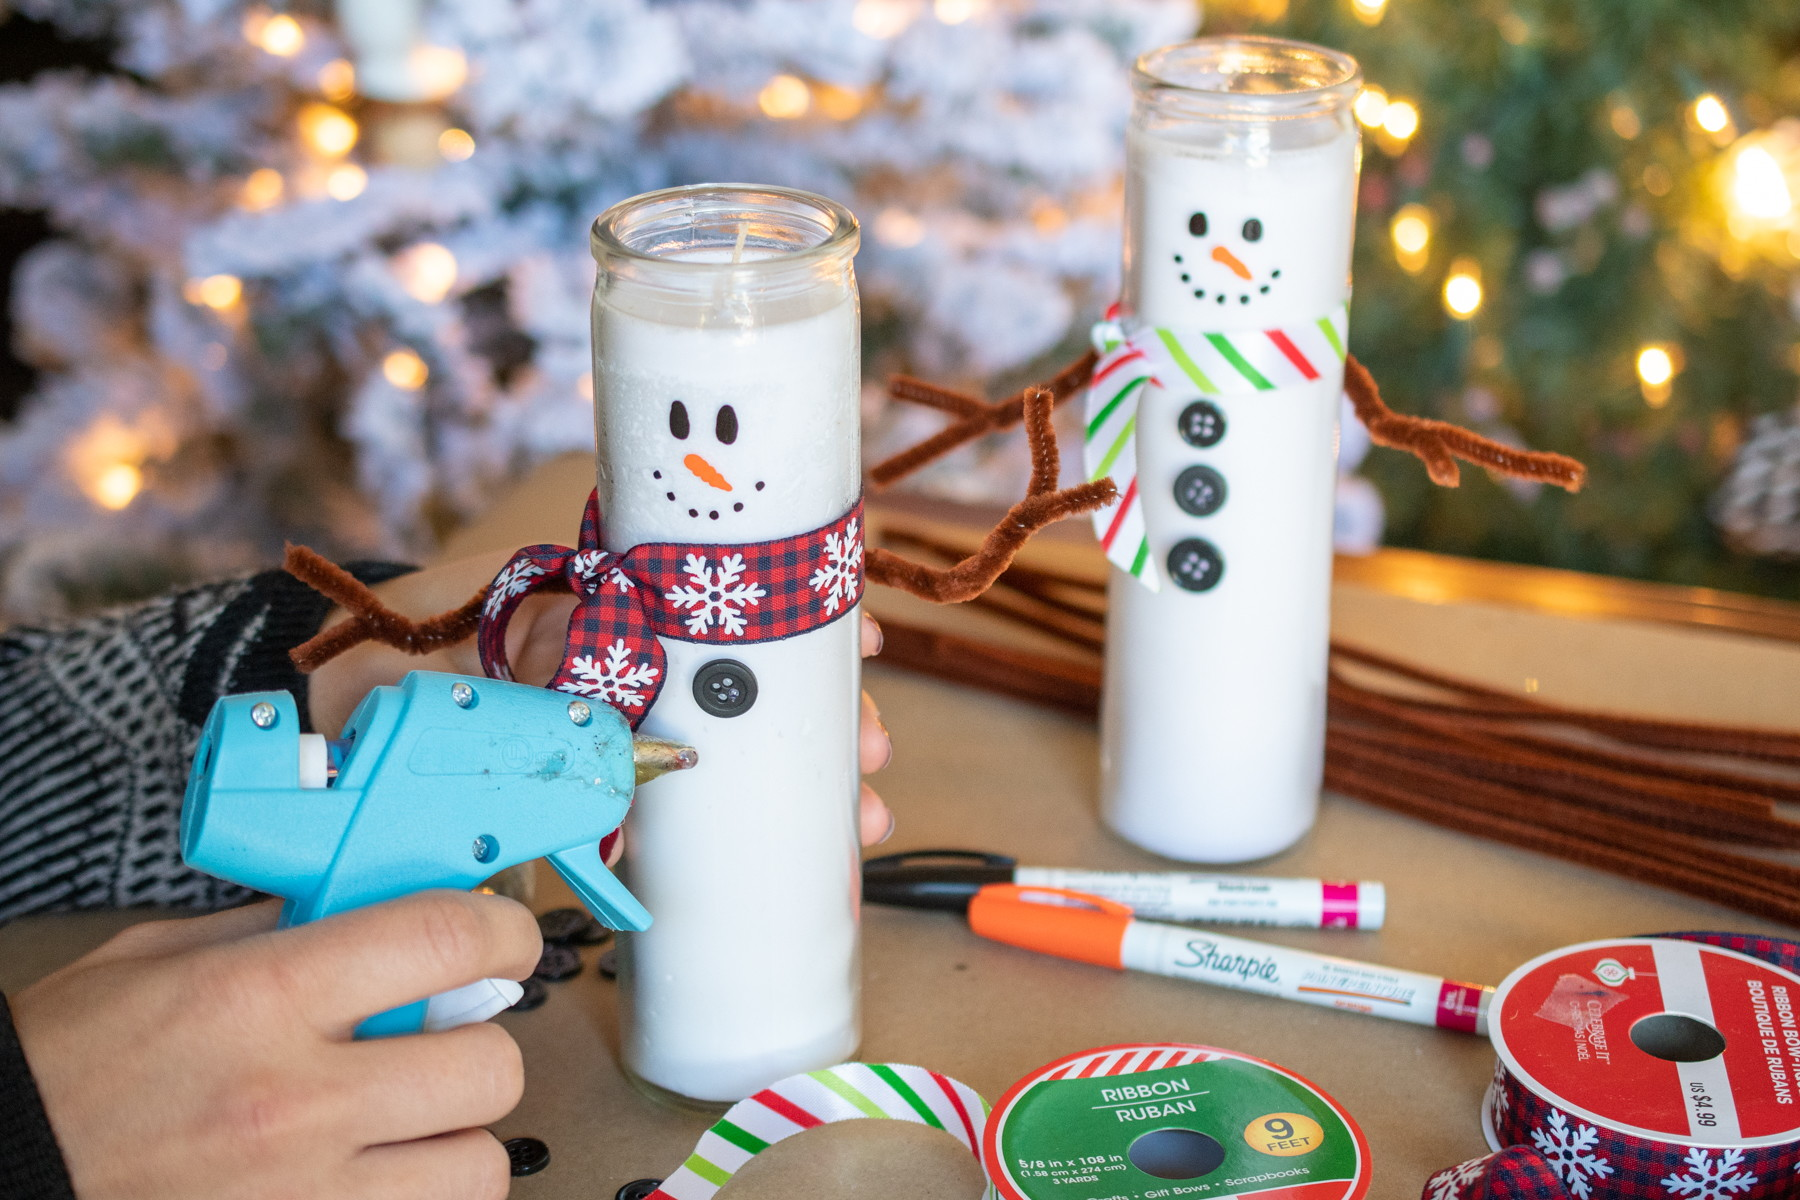 Dollar General Christmas Decorations.15 Dollar Store Christmas Diy Projects Anyone Can Do The